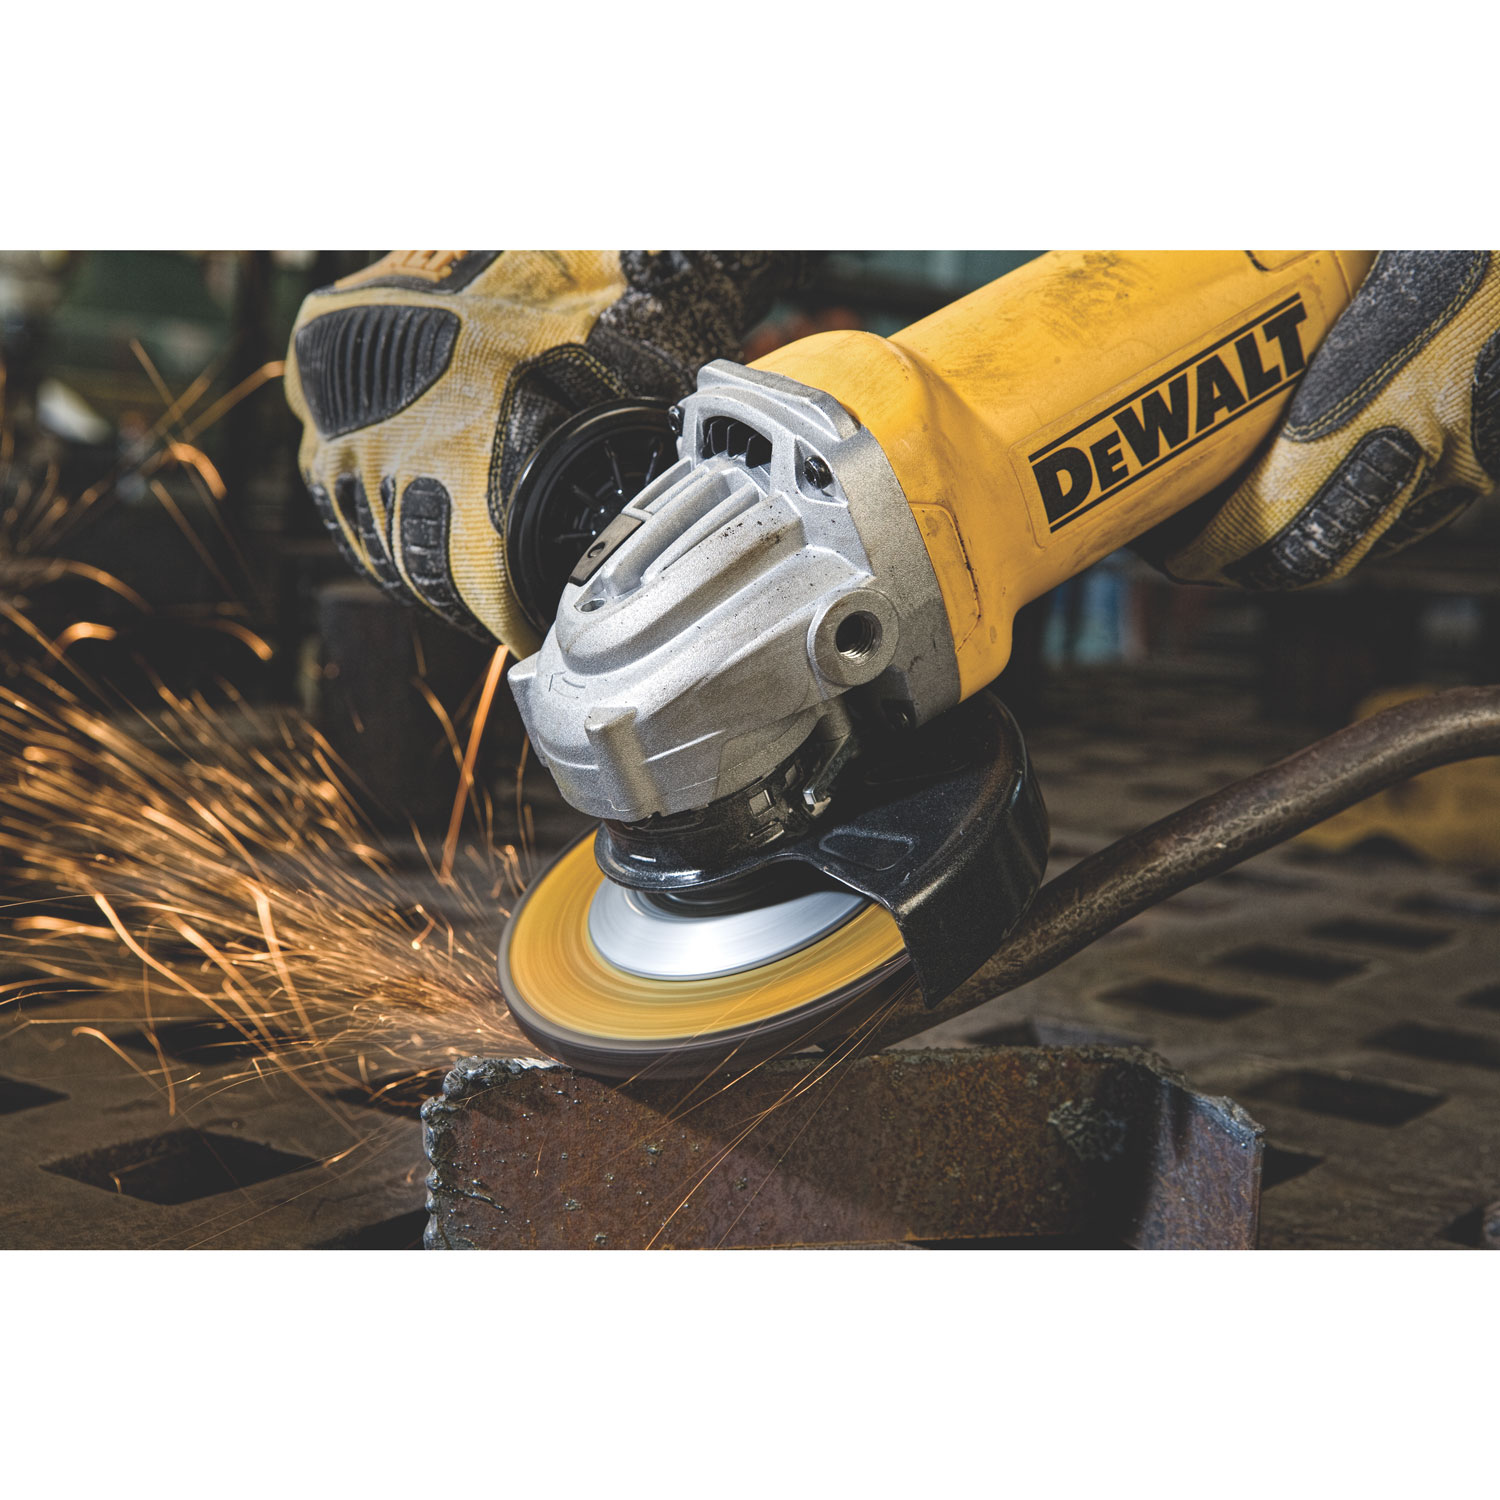 Dewalt Angle Grinder Dewalt Launches New Compact Small Angle Grinders Compact Equipment